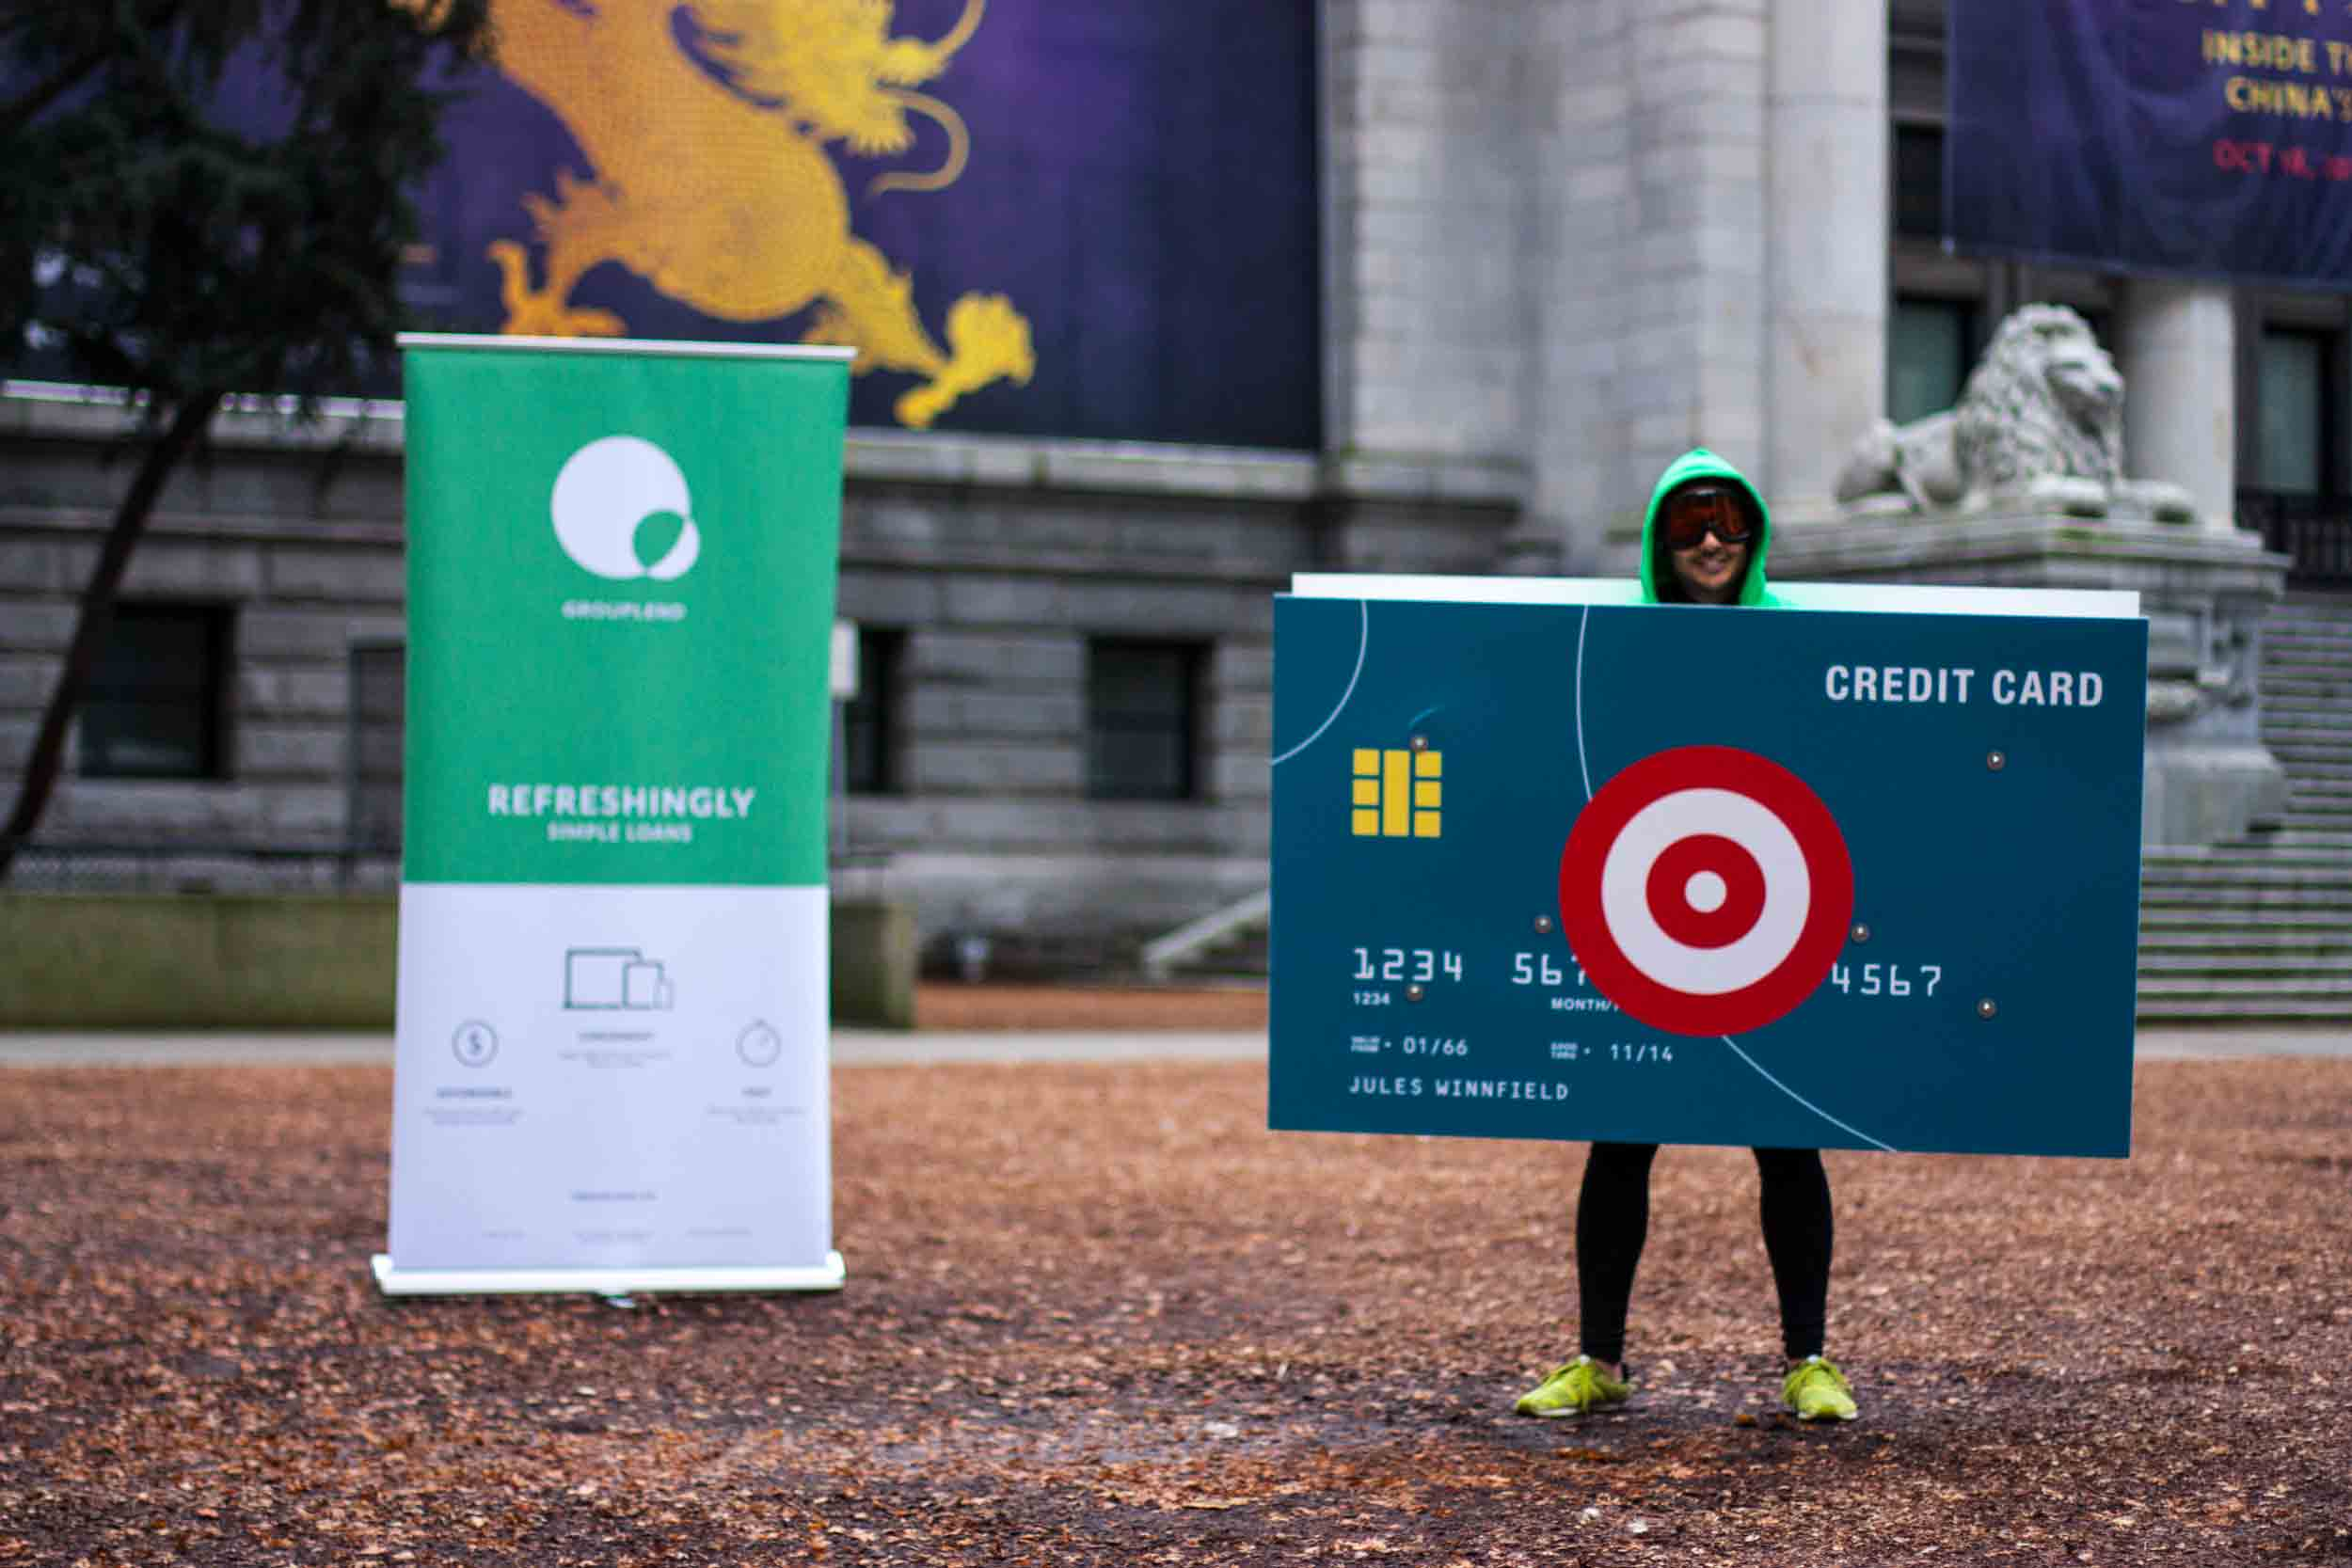 Grow Financial CEO Kevin Sandhu in a credit card costume at the Vancouver Art Gallery — by Dima Yagnyuk.